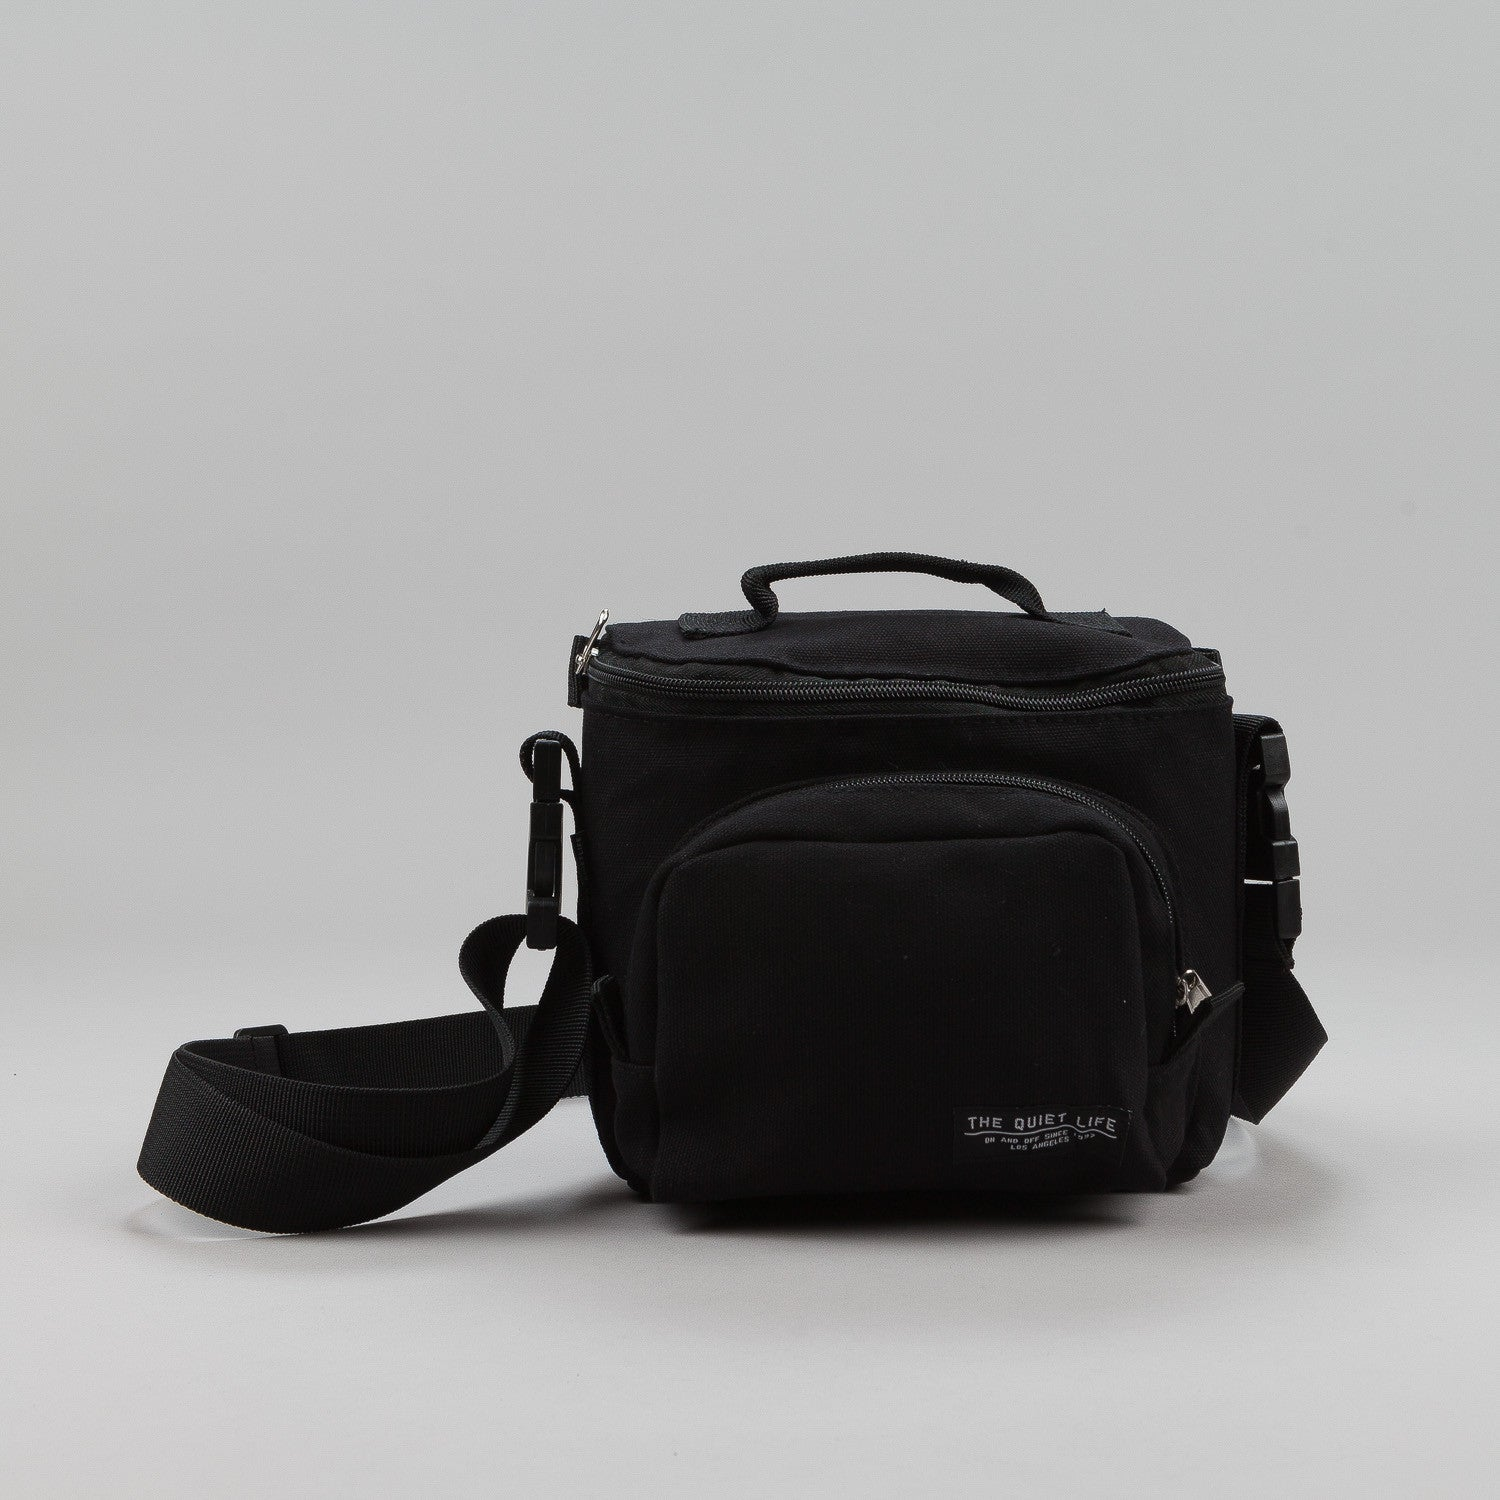 The Quiet Life Camera Bag - Black